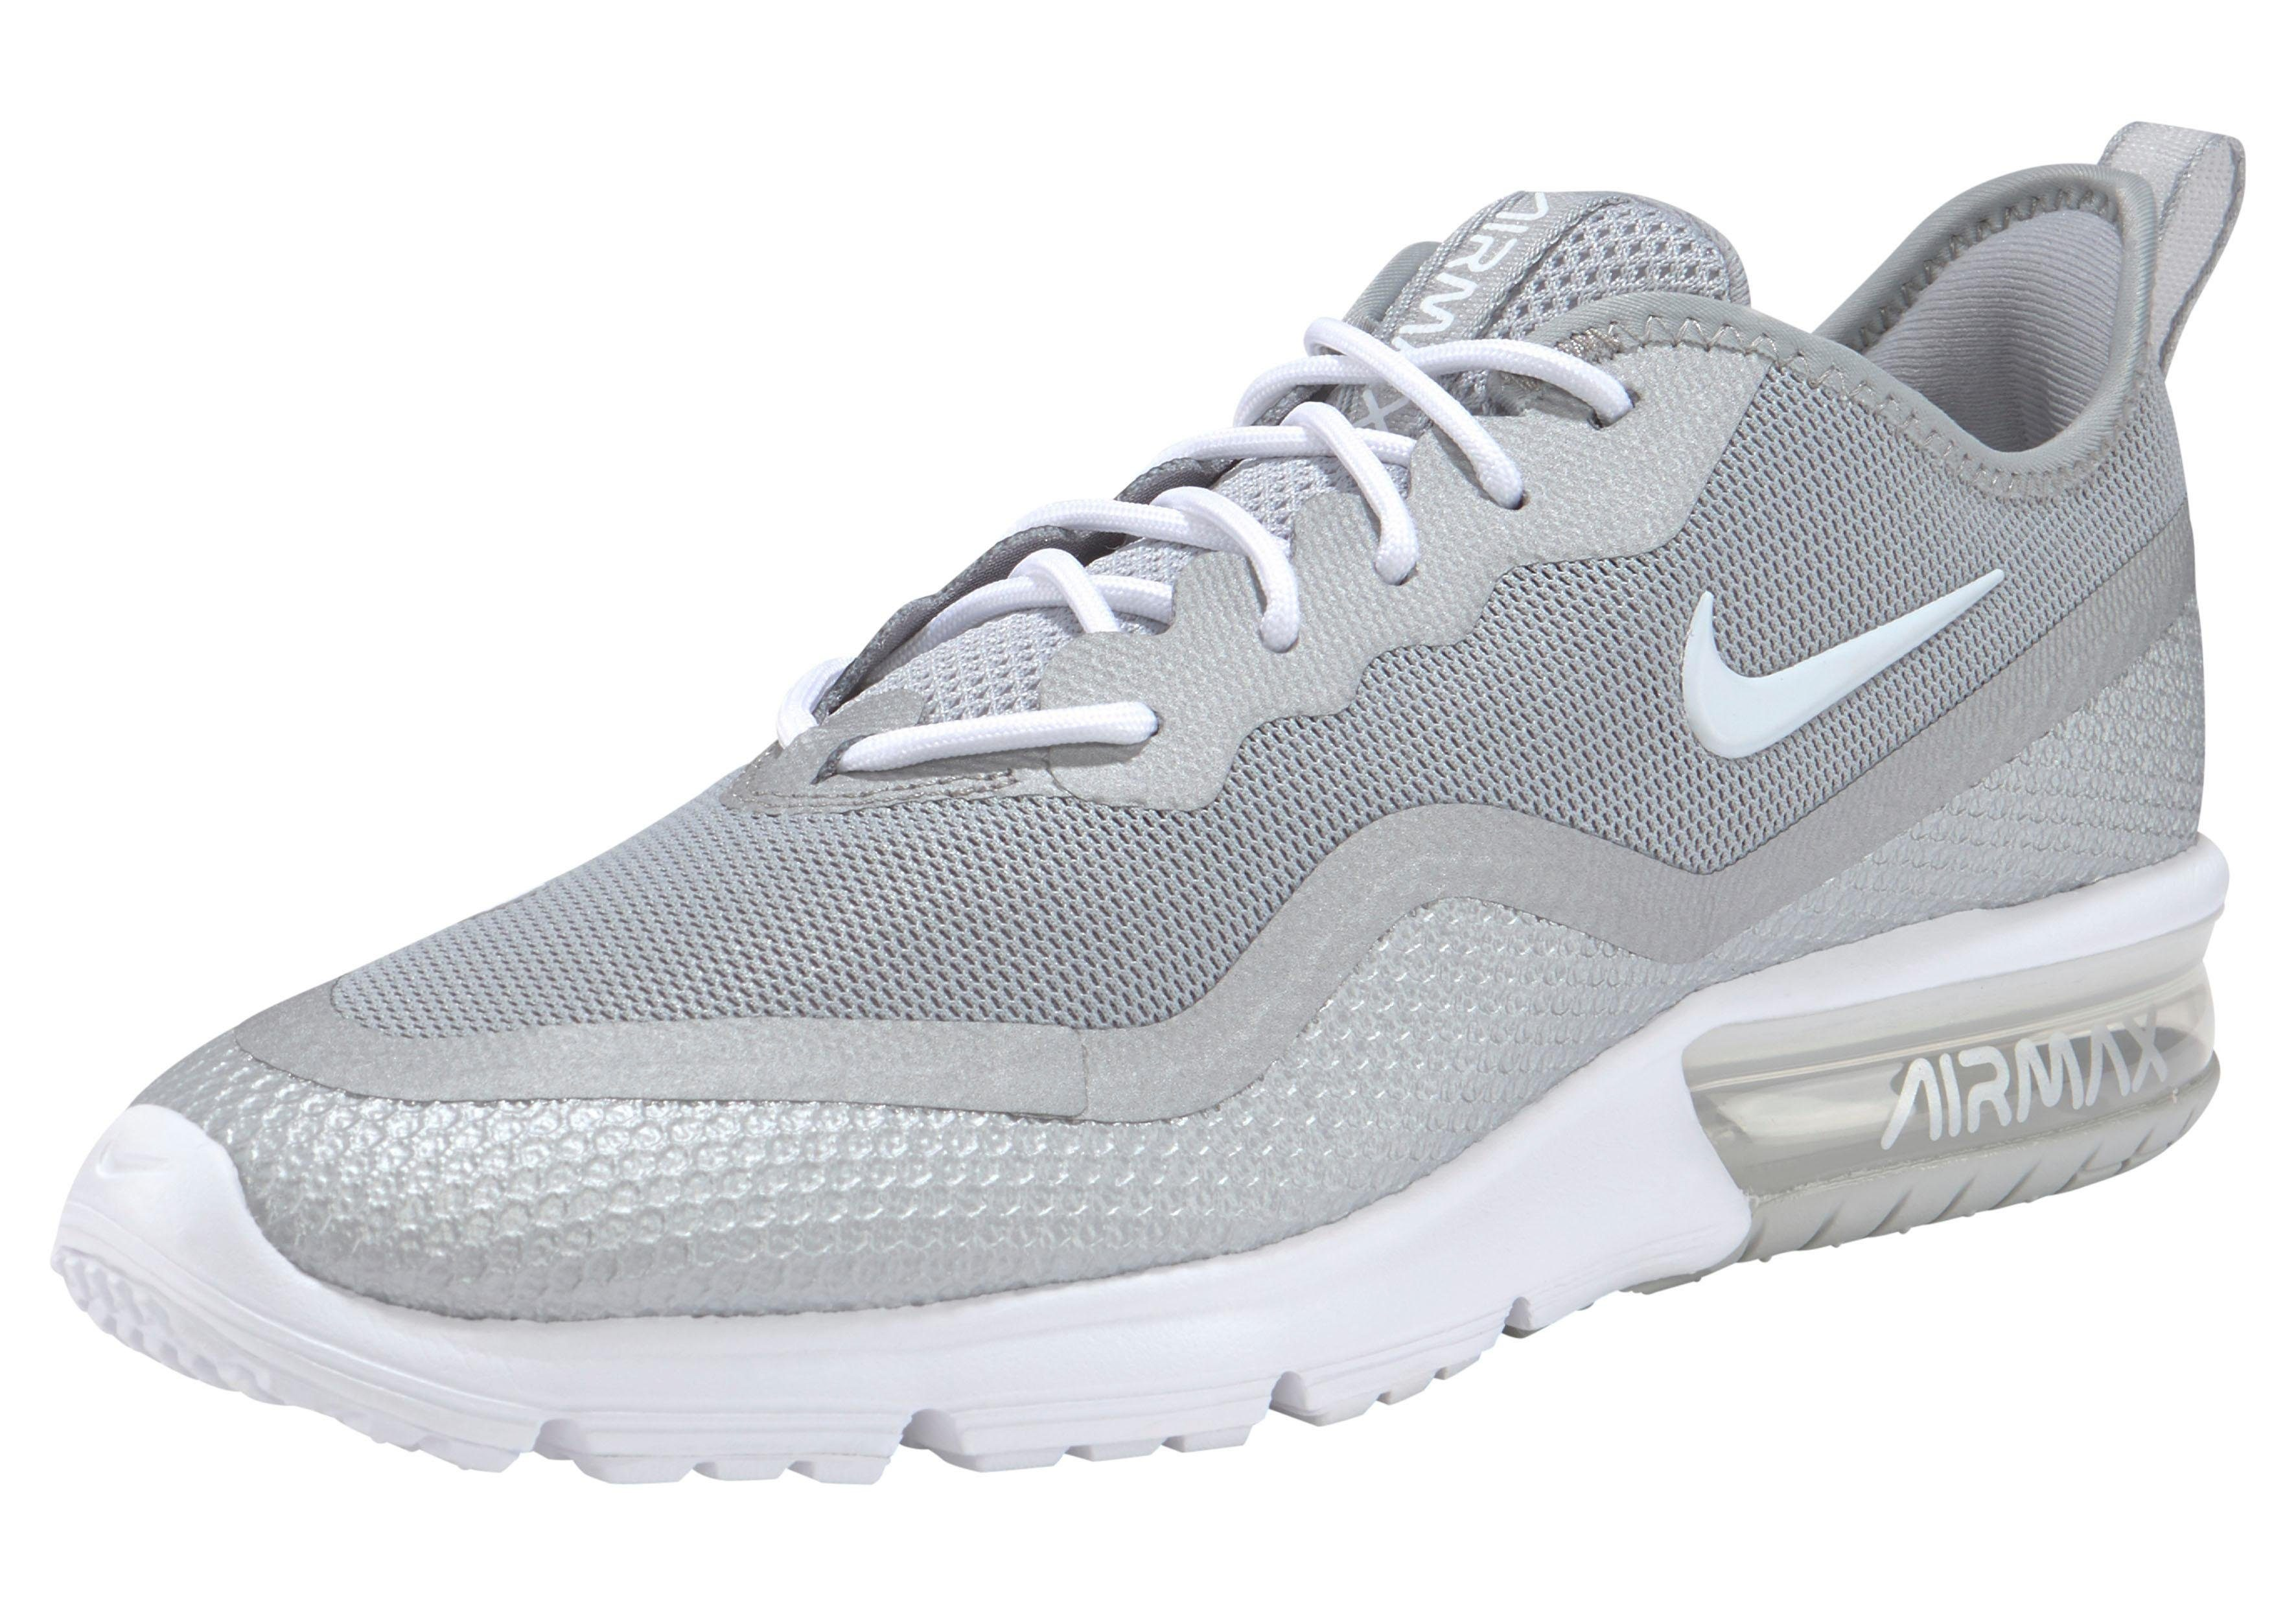 Nike Damen Sneaker Air Max Sequent weiß 42 | GALERIA